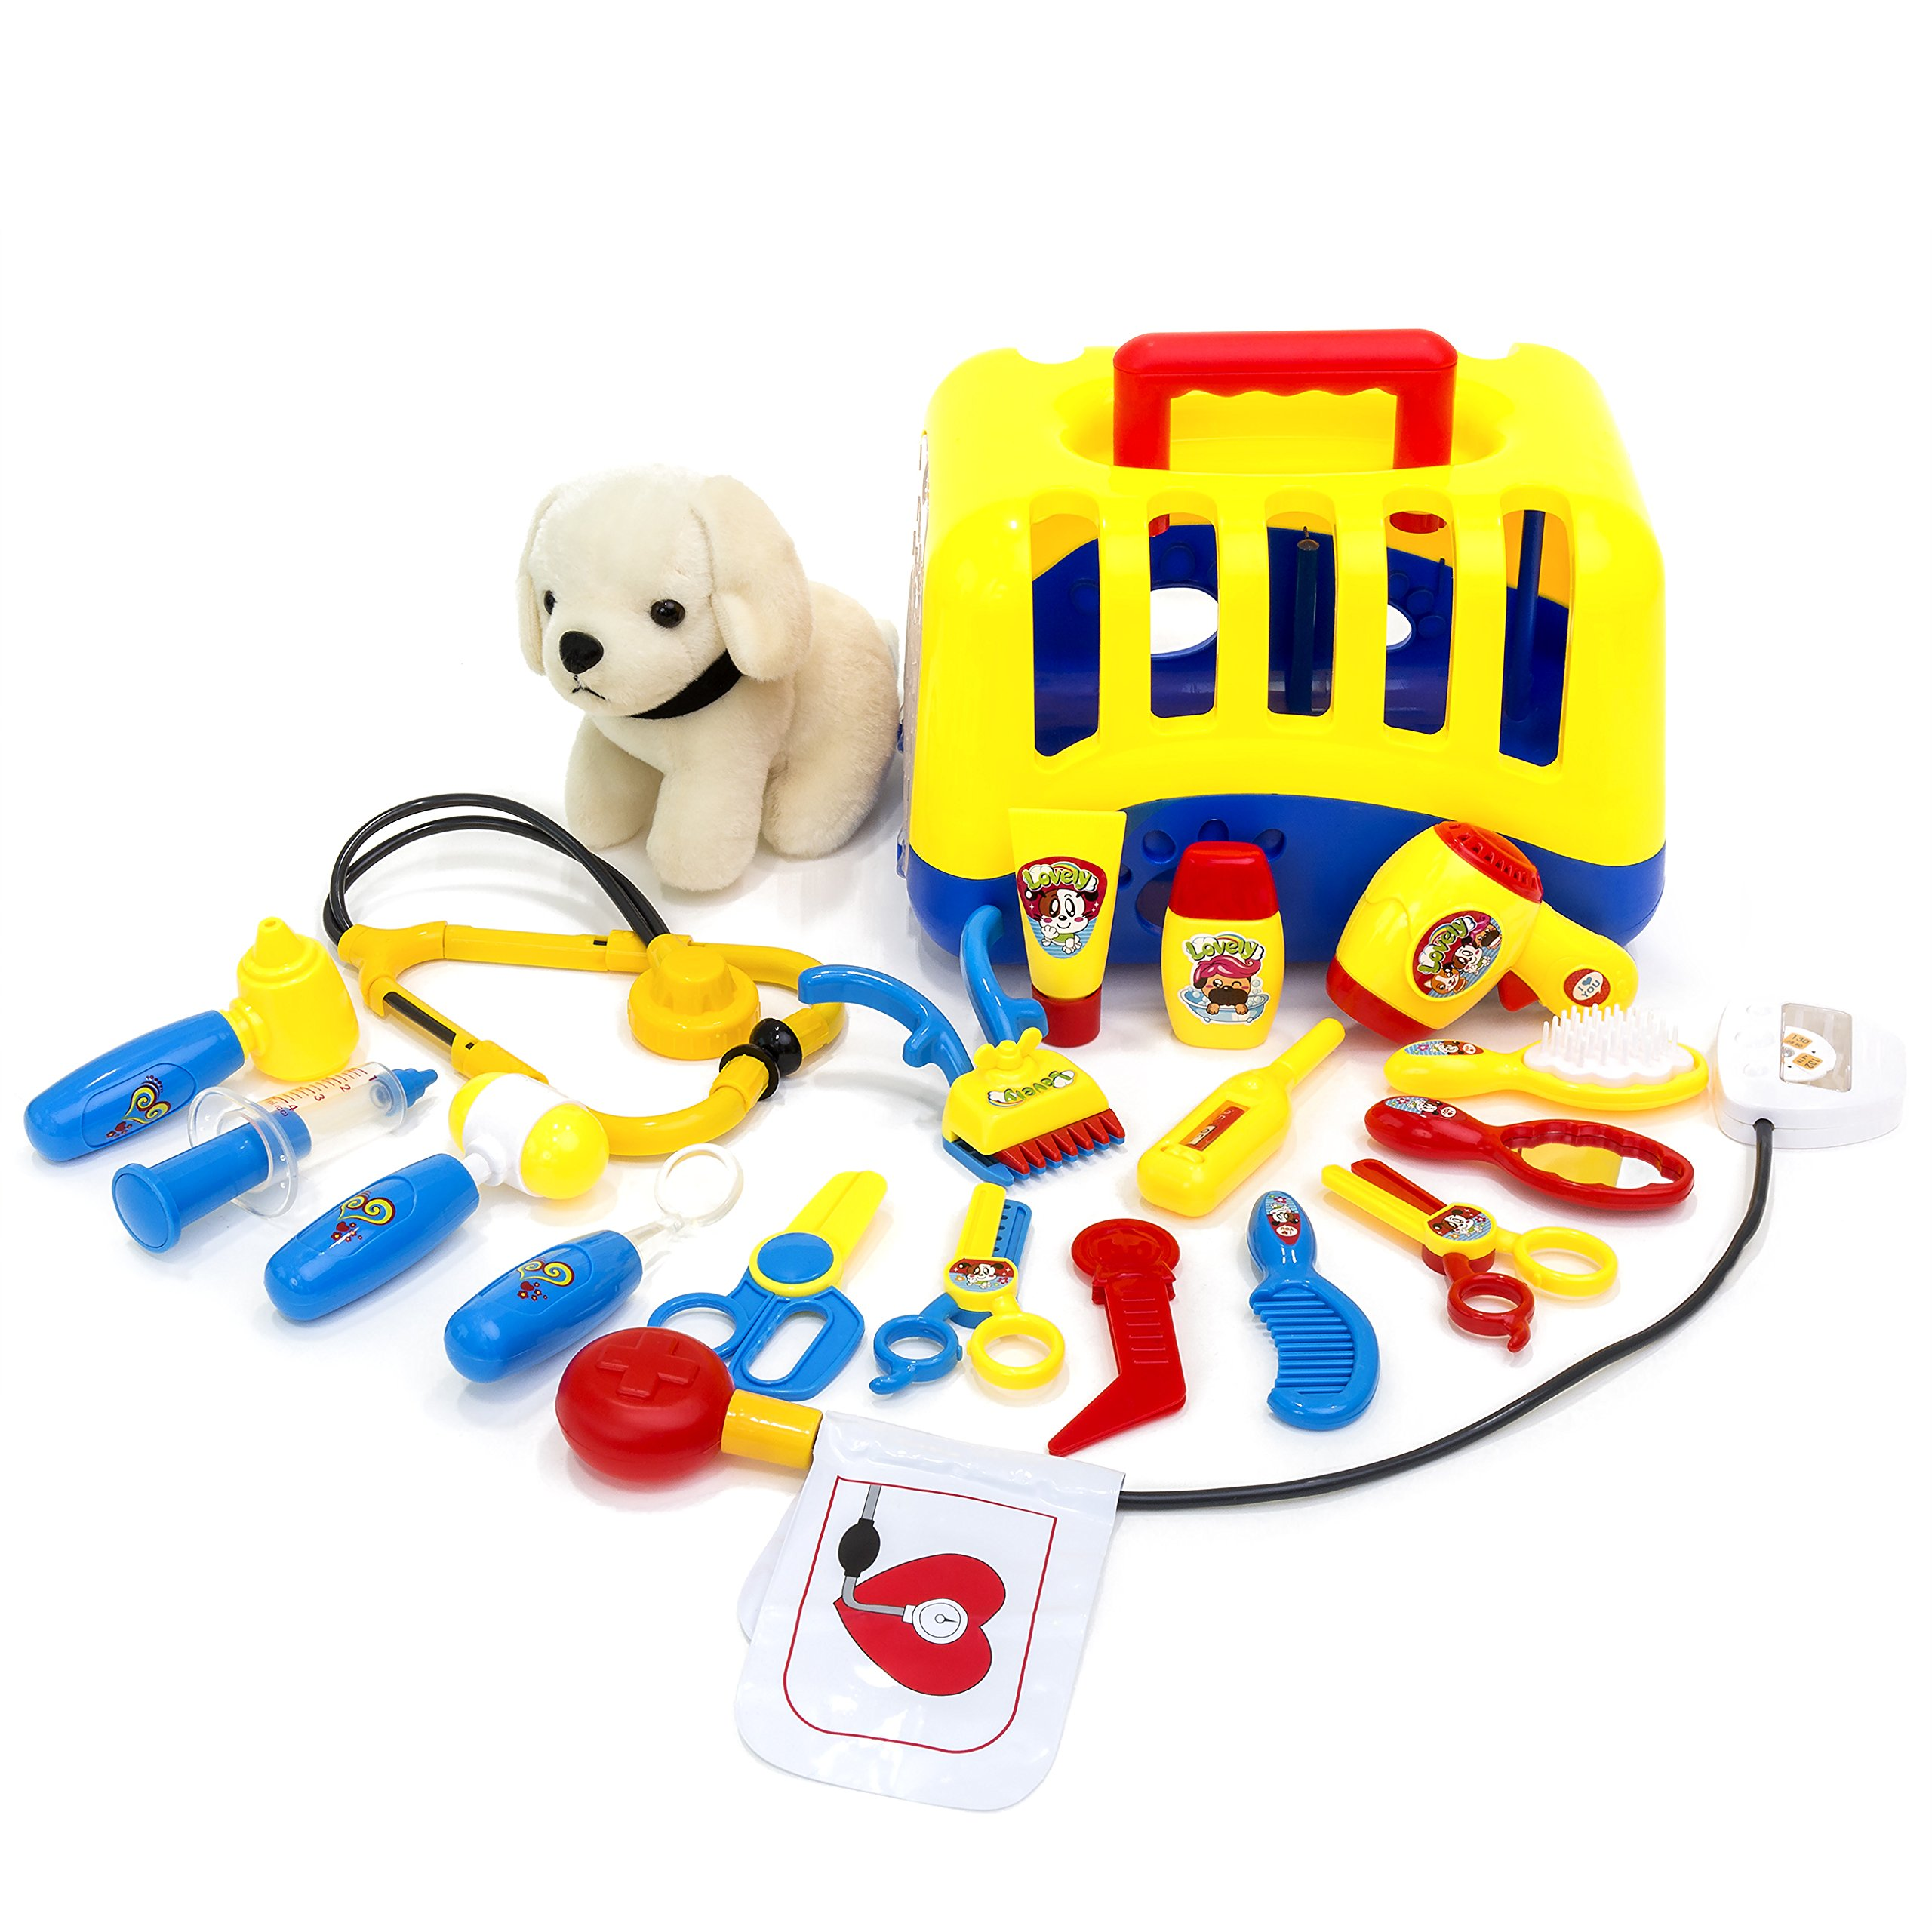 Best Choice Products Kids 20-Piece Dog Care Toy Set with Puppy Plush, Carrier and Tools, Multi by Best Choice Products